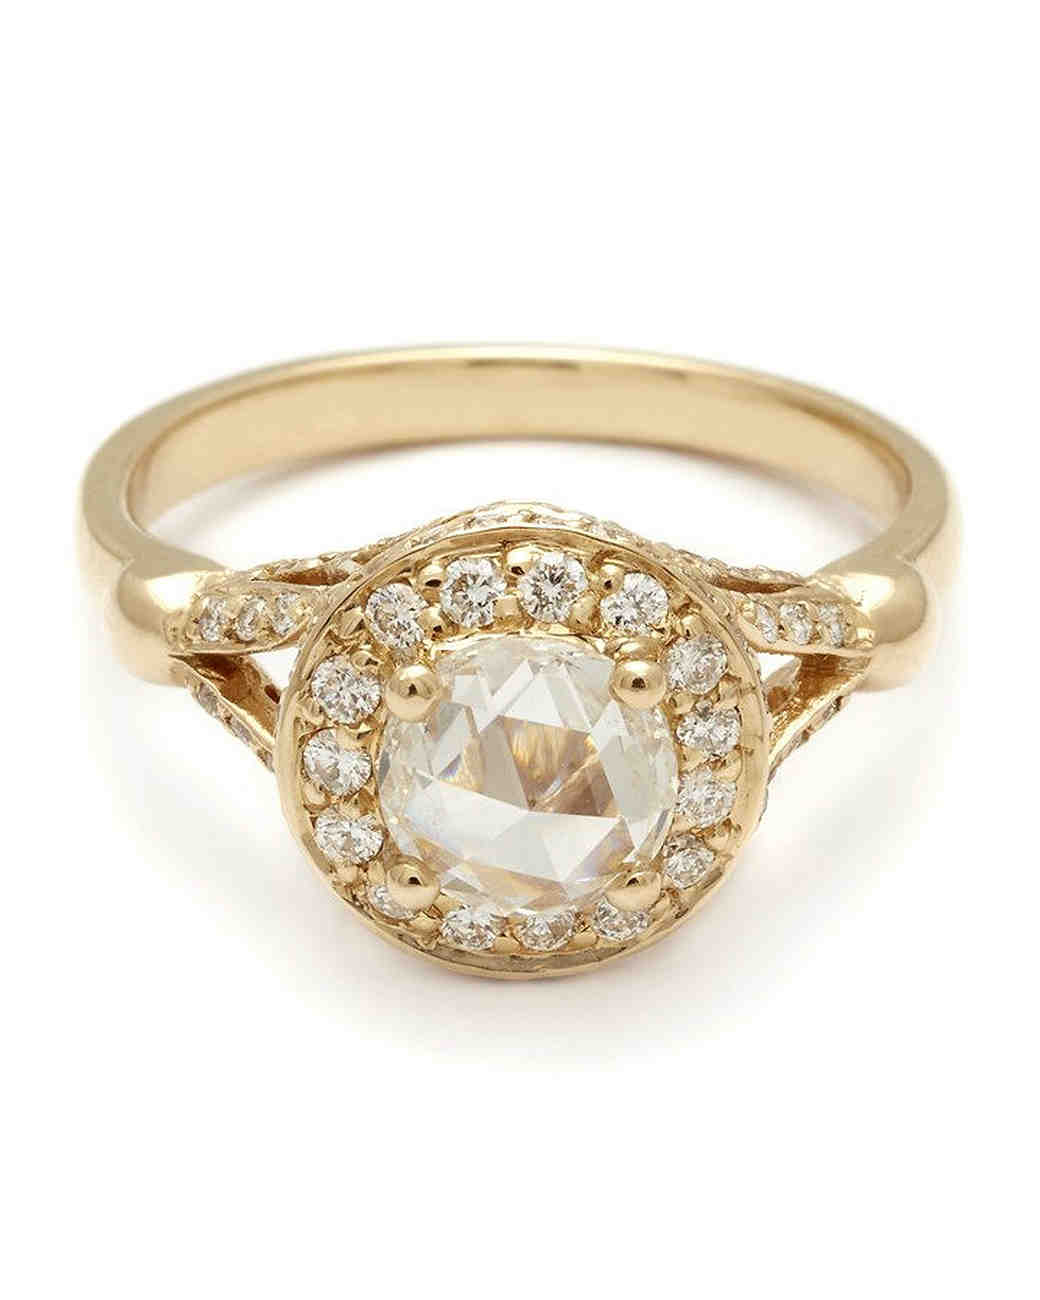 rings ara diamond solitaire ring gold ct shop engagement diamonds cushion cut